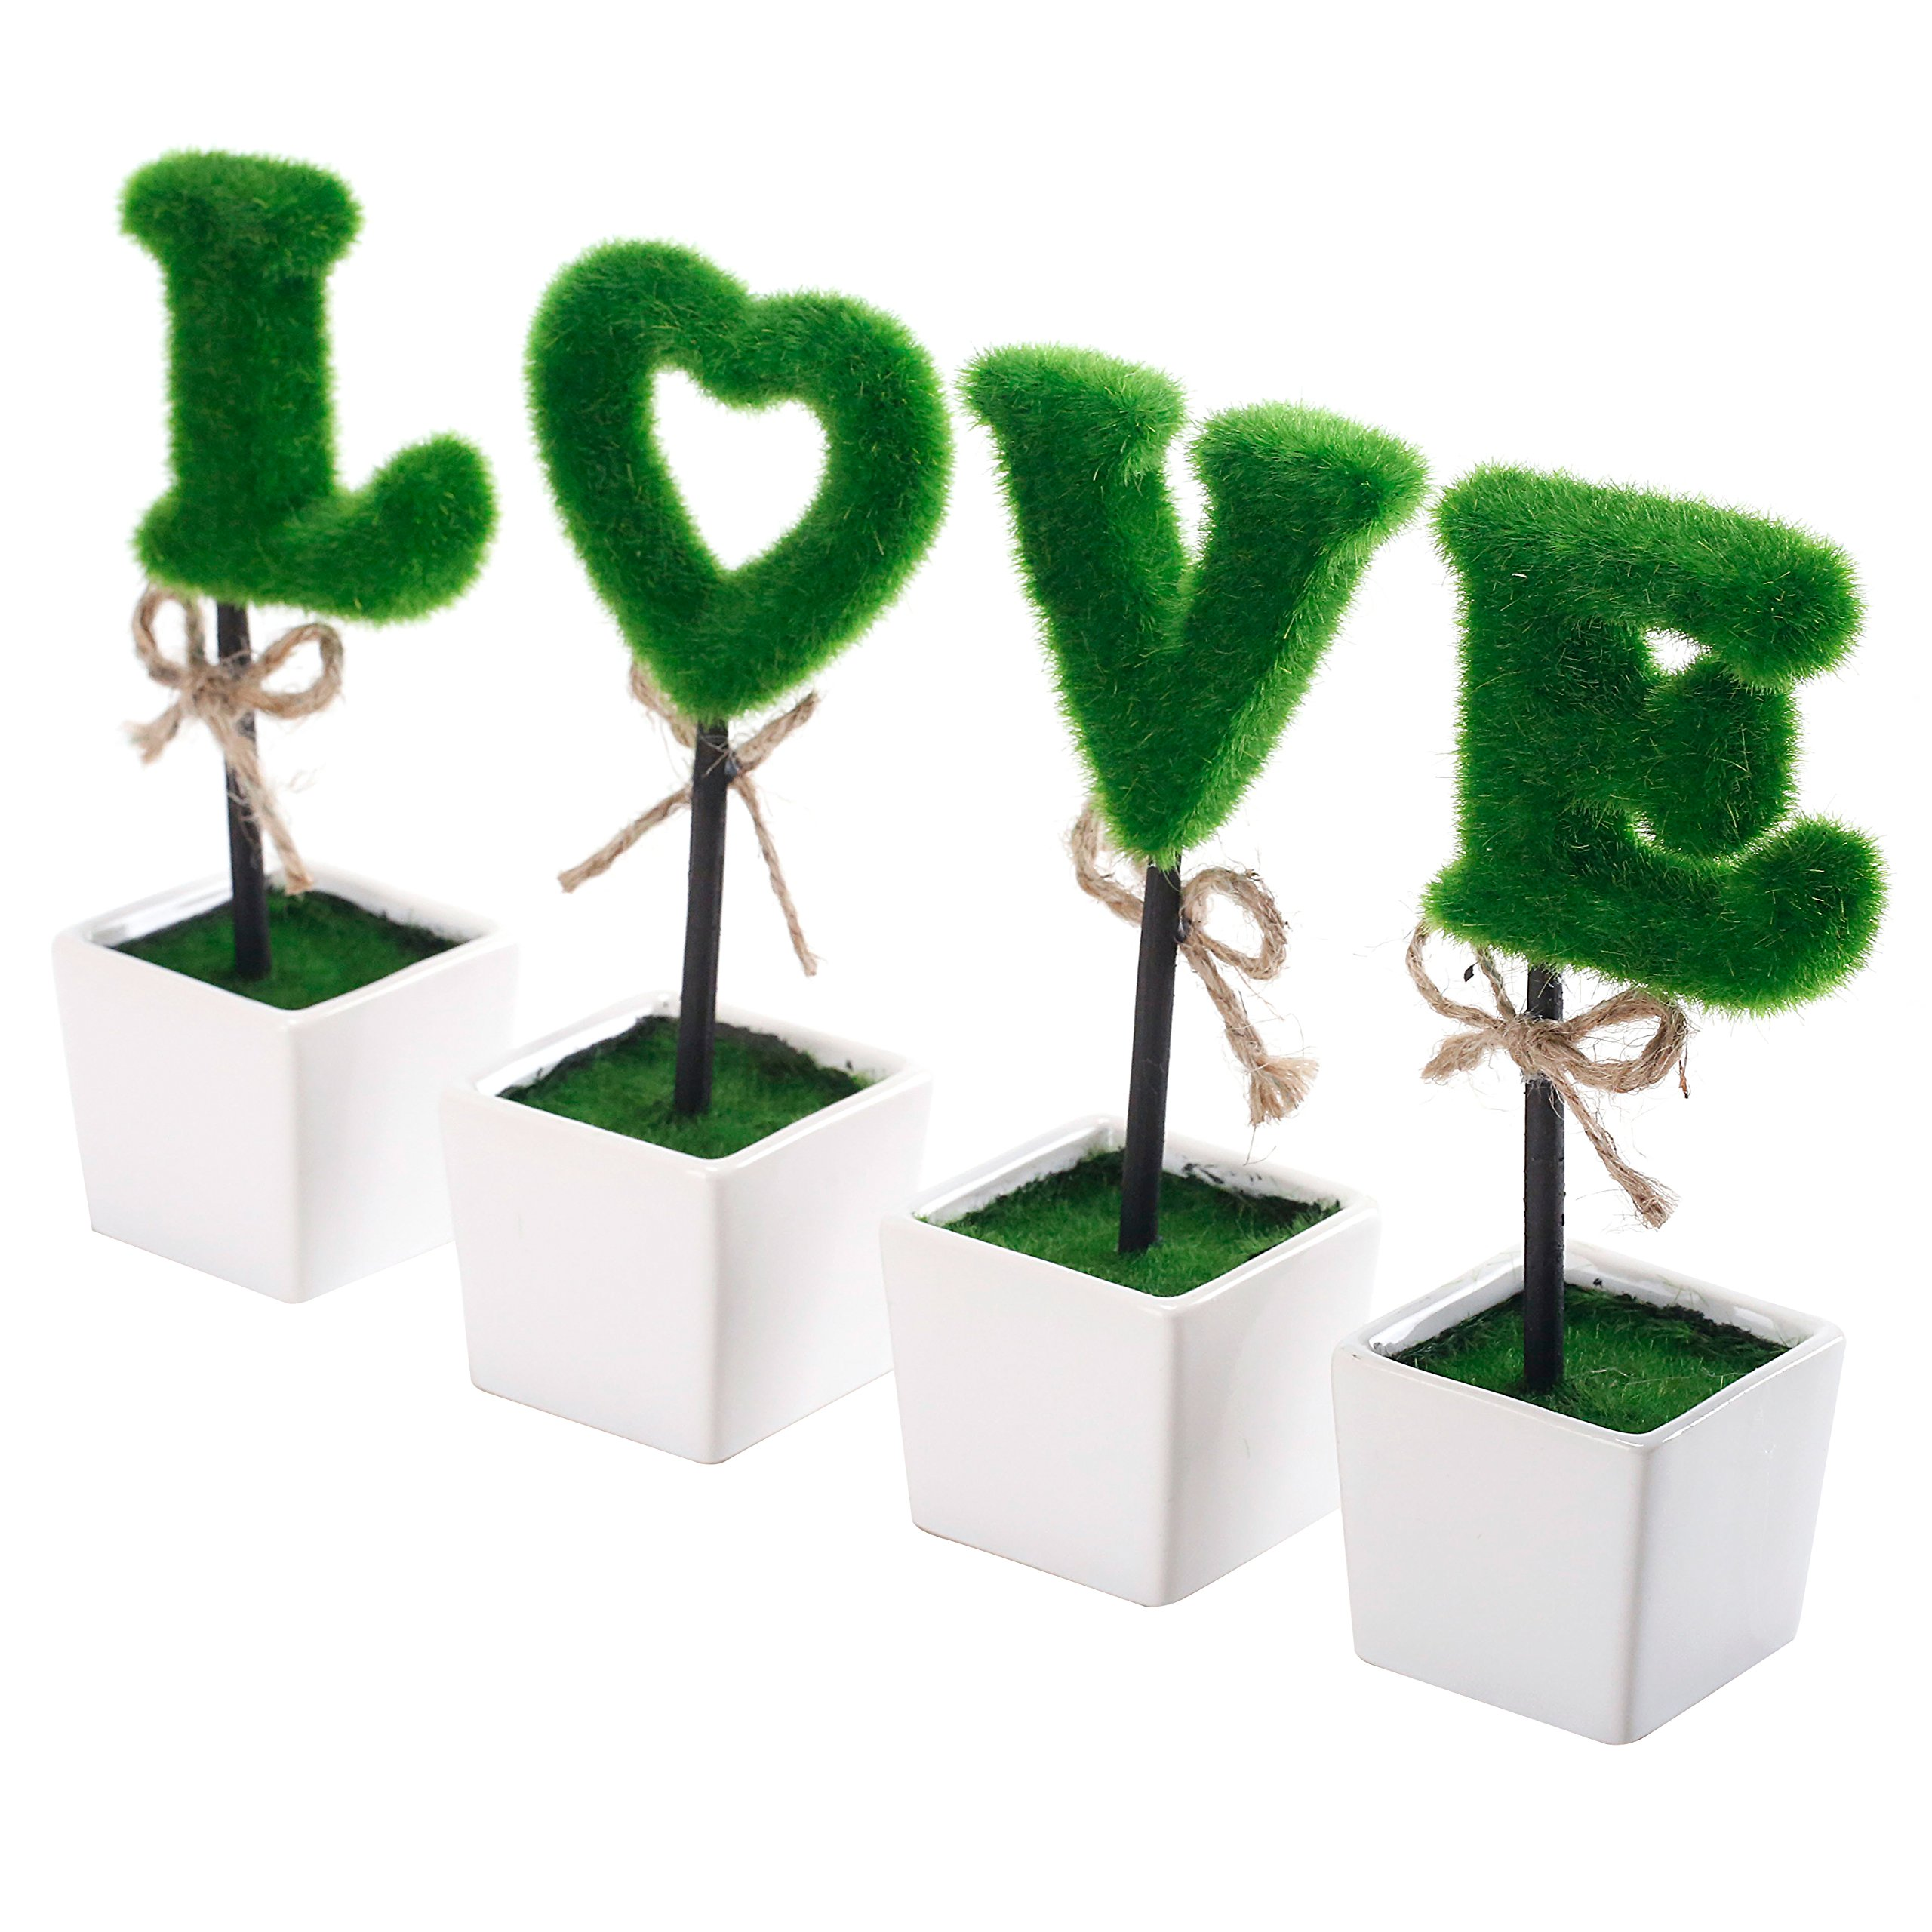 Set of 4 Artificial LOVE Topiary Set, Faux Letter Hedge Sculptures with Square Ceramic Pots by MyGift